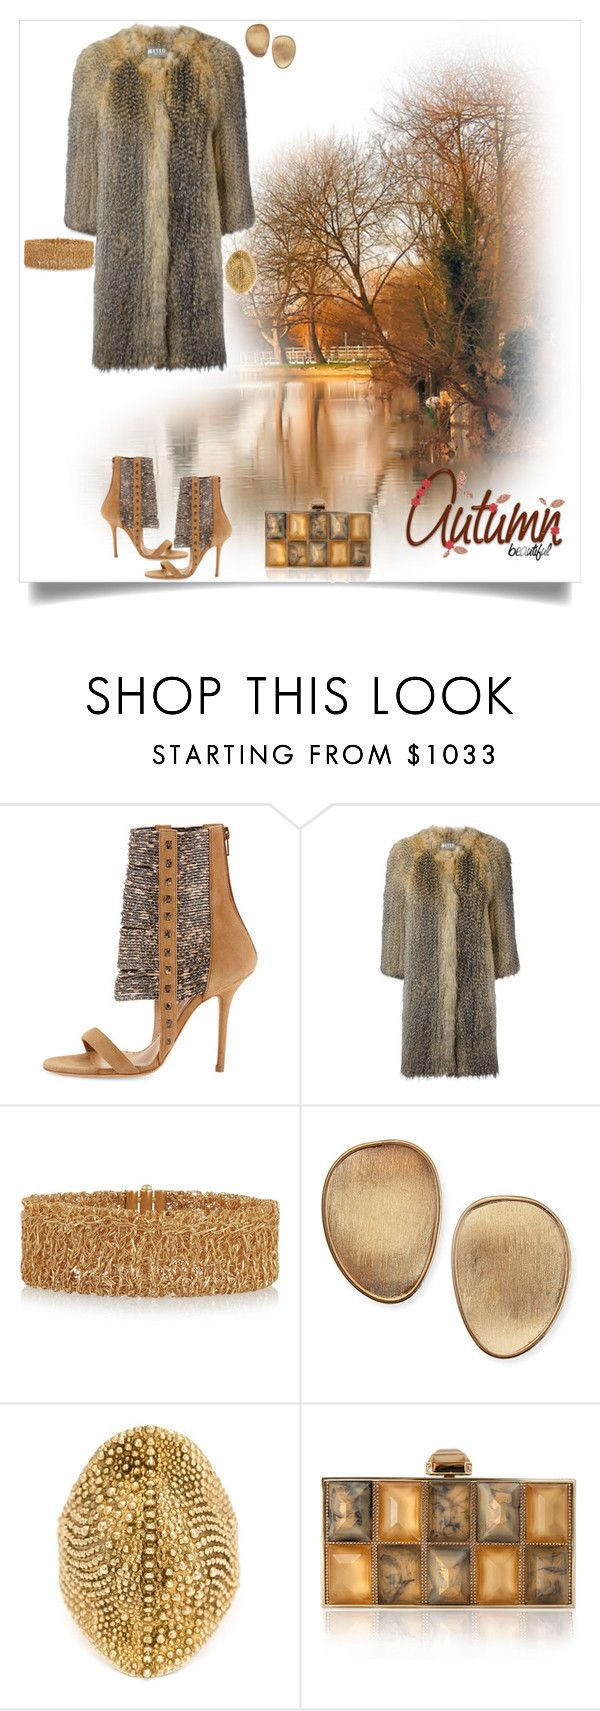 """""""Autumn Beautiful"""" by shoecraycray ❤ liked on Polyvore featuring ALEXA WAGNER, Meteo by Yves Salomon, Carolina Bucci, Marco Bicego, Venyx and Judith Leiber"""